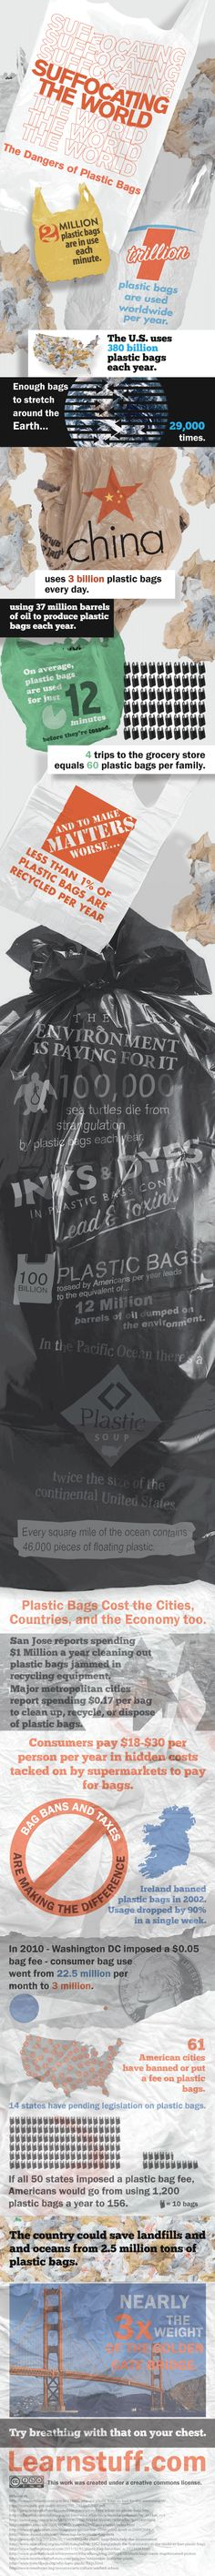 use a cloth bag ..instead of plastic and use it again each time you go shopping